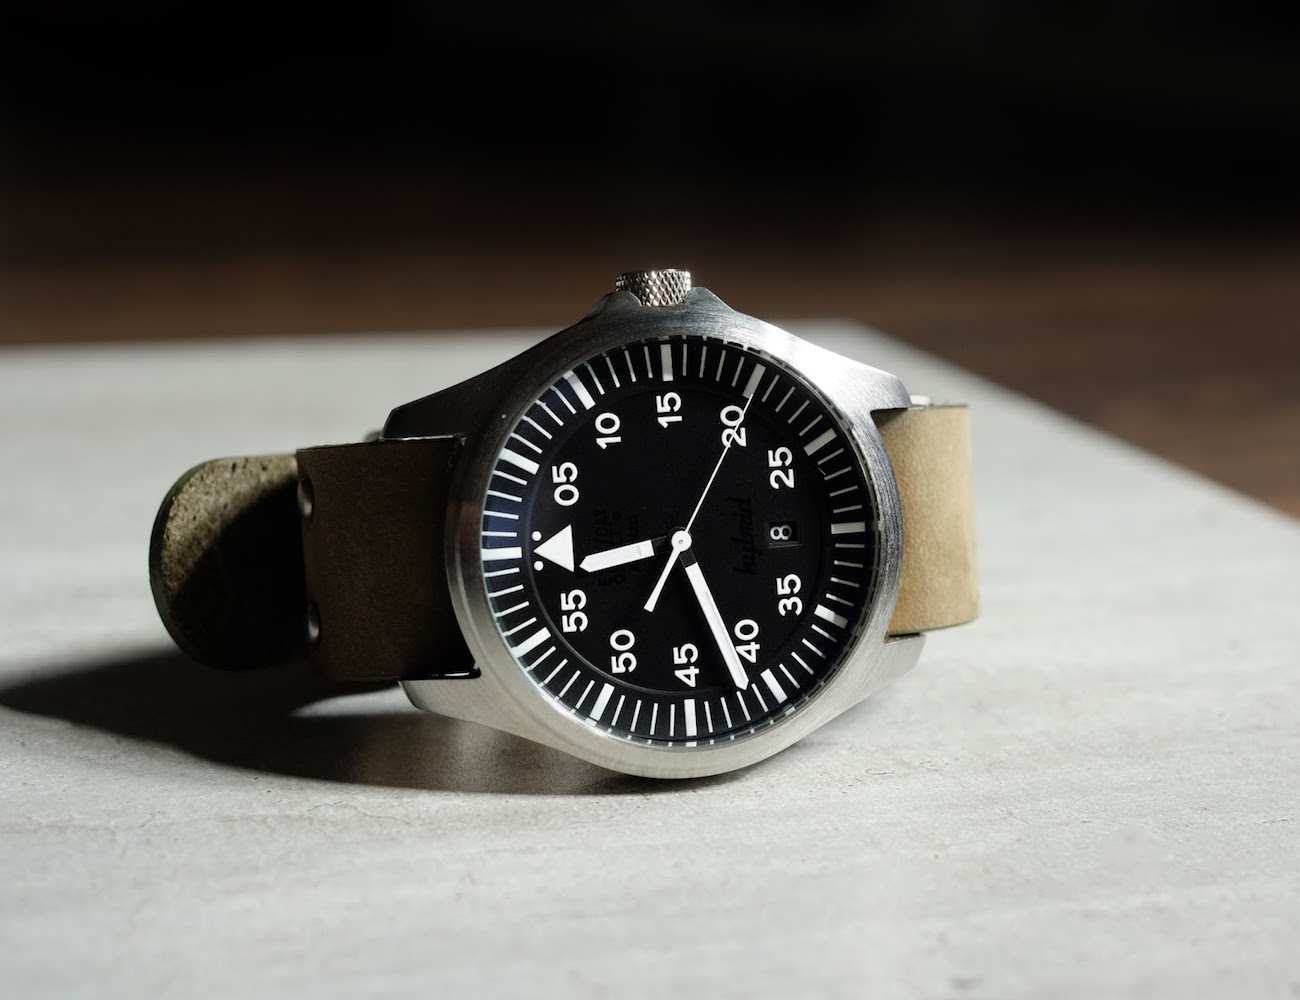 eo-2-the-pilot-watch-powered-by-you-05